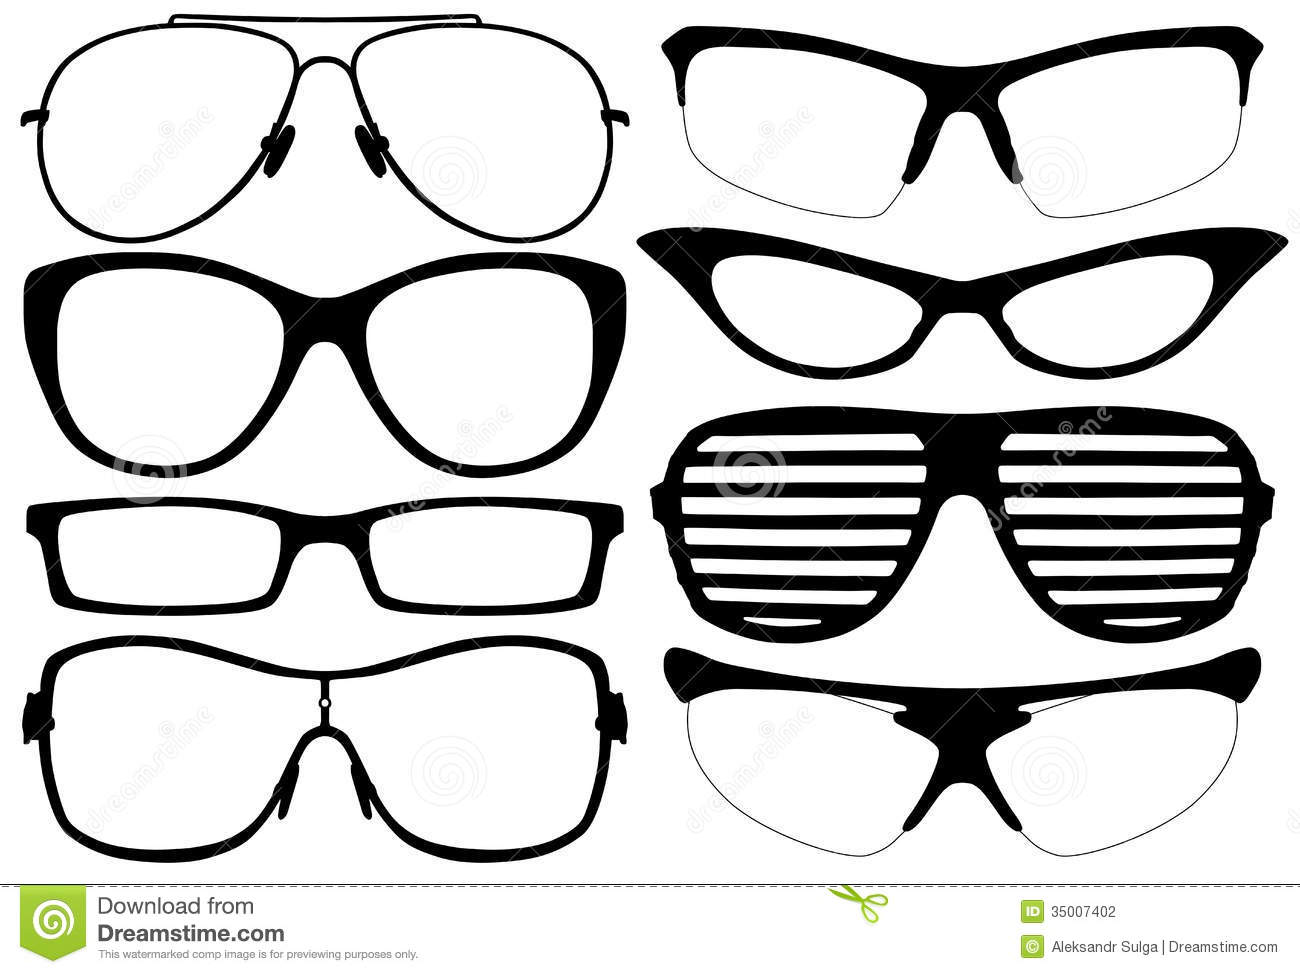 eyeglasses shades g2c5  eyeglasses shades